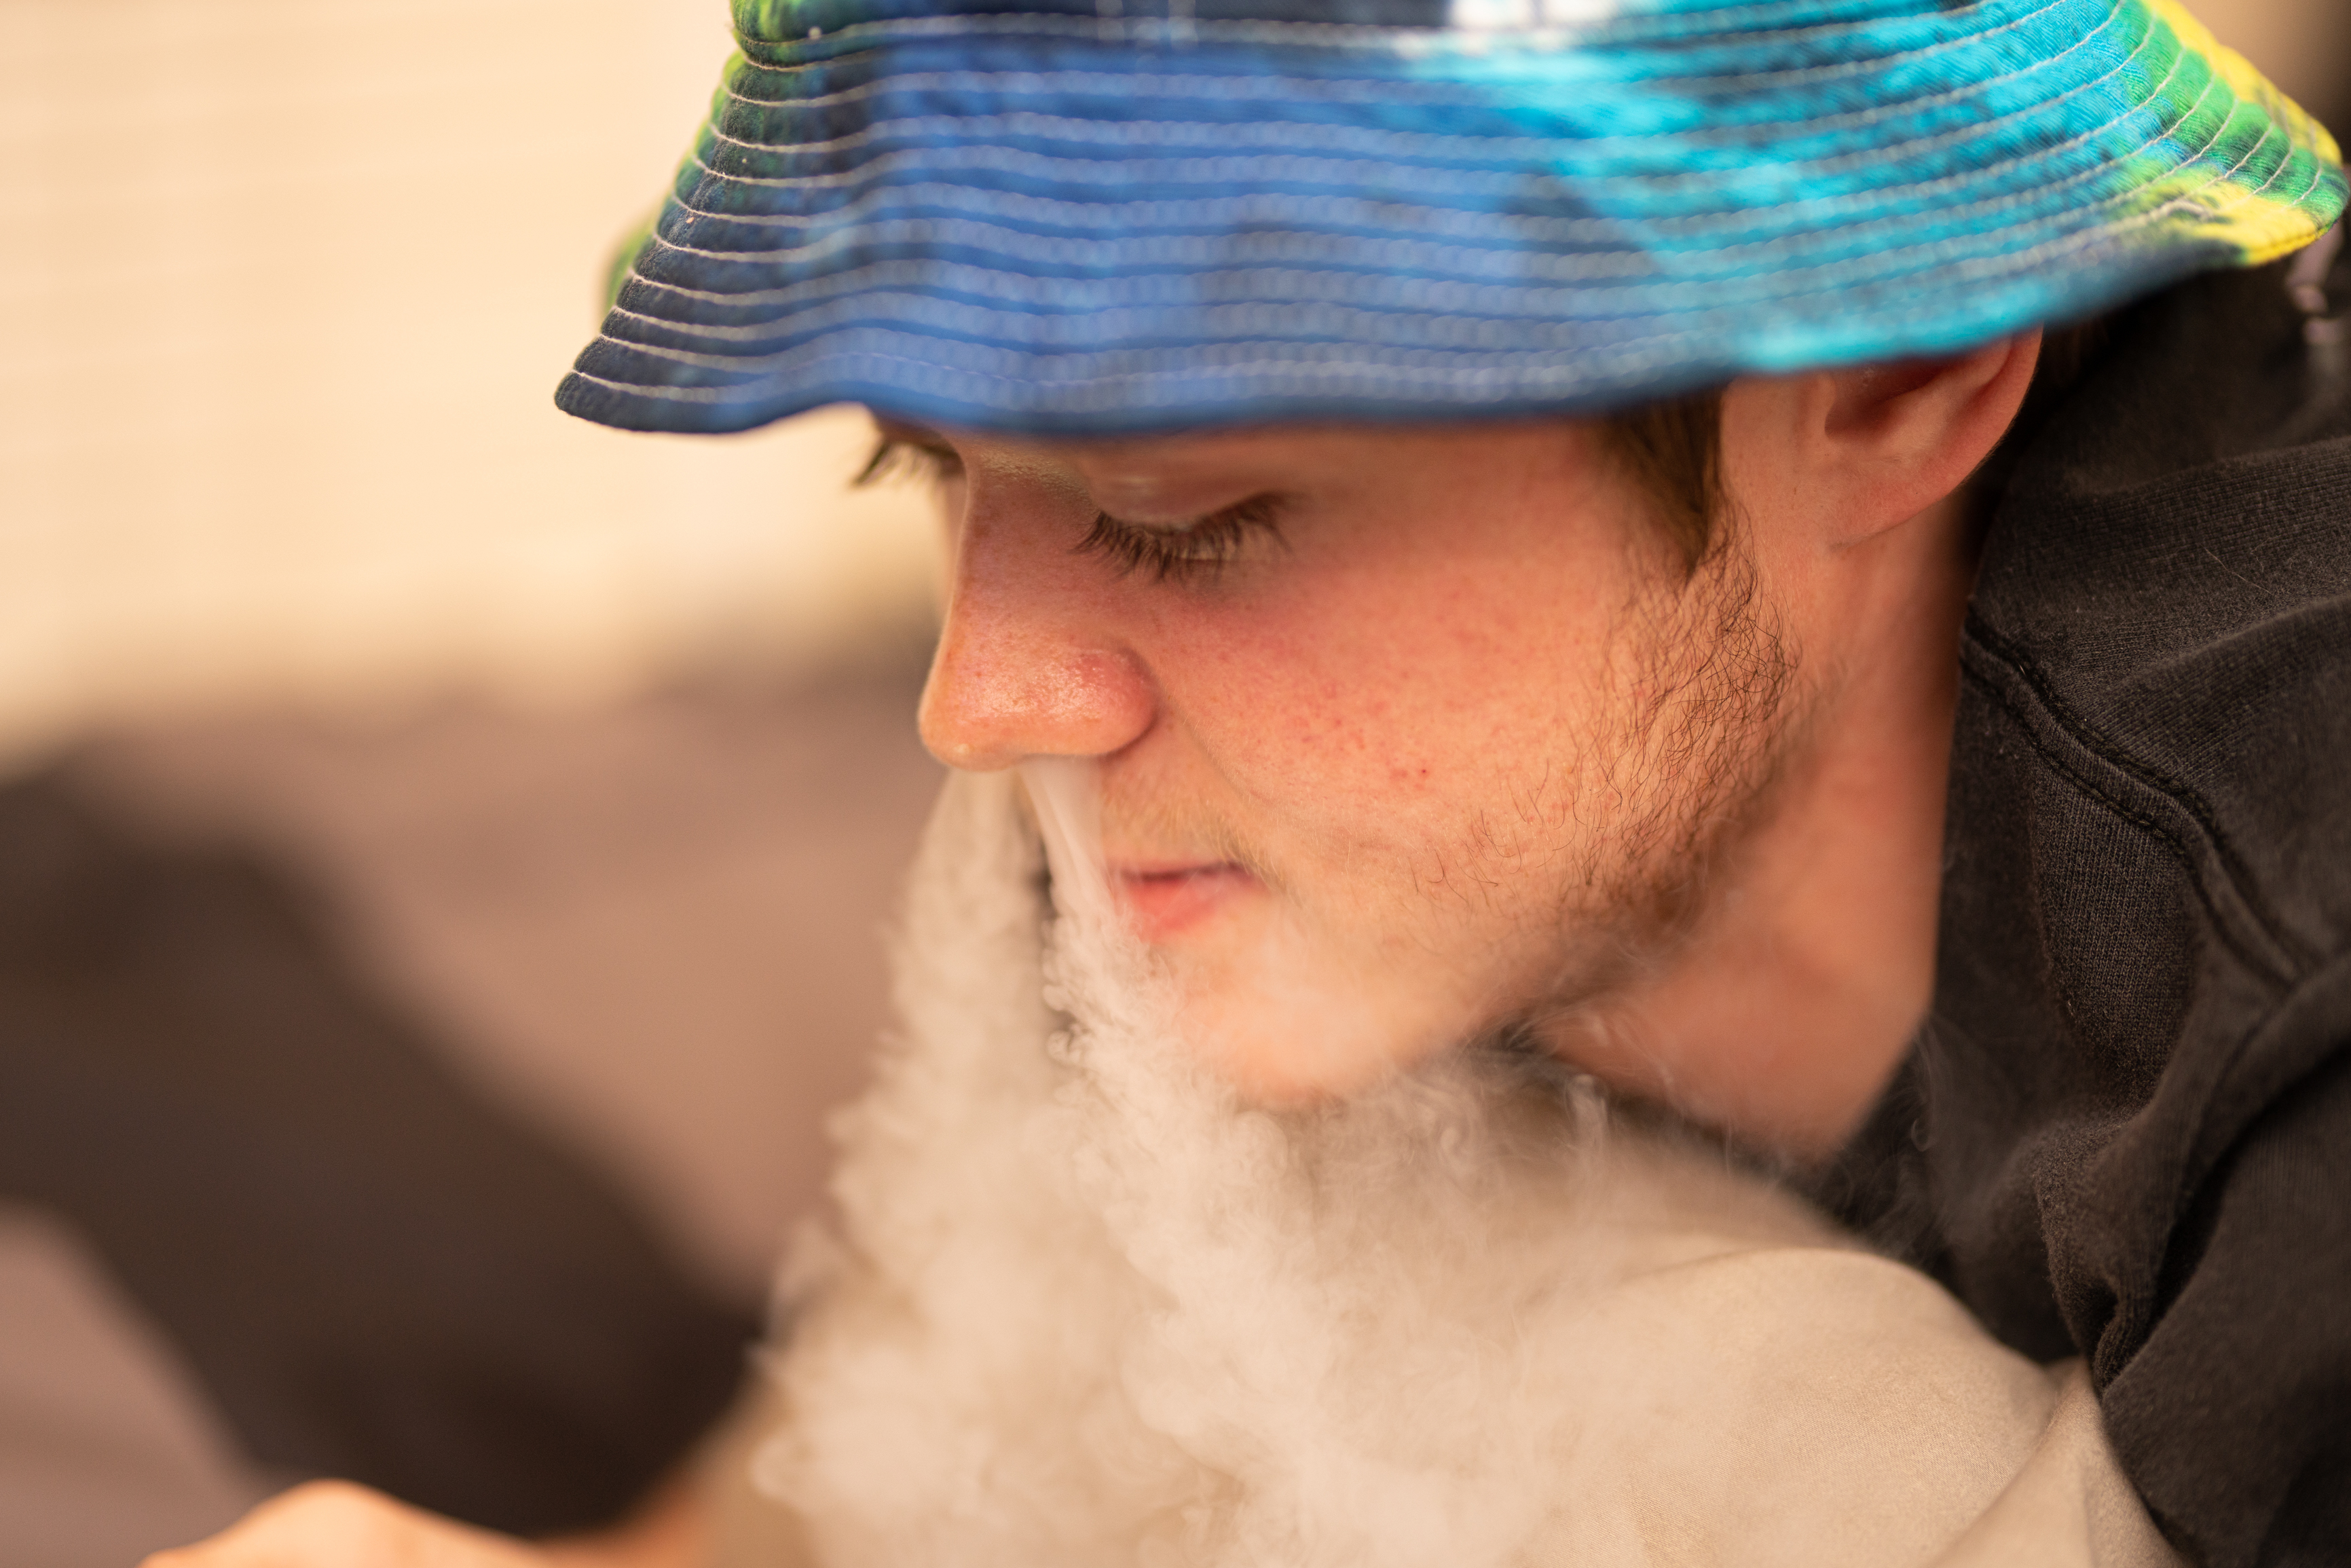 Teenager vaping/ Shutterstock